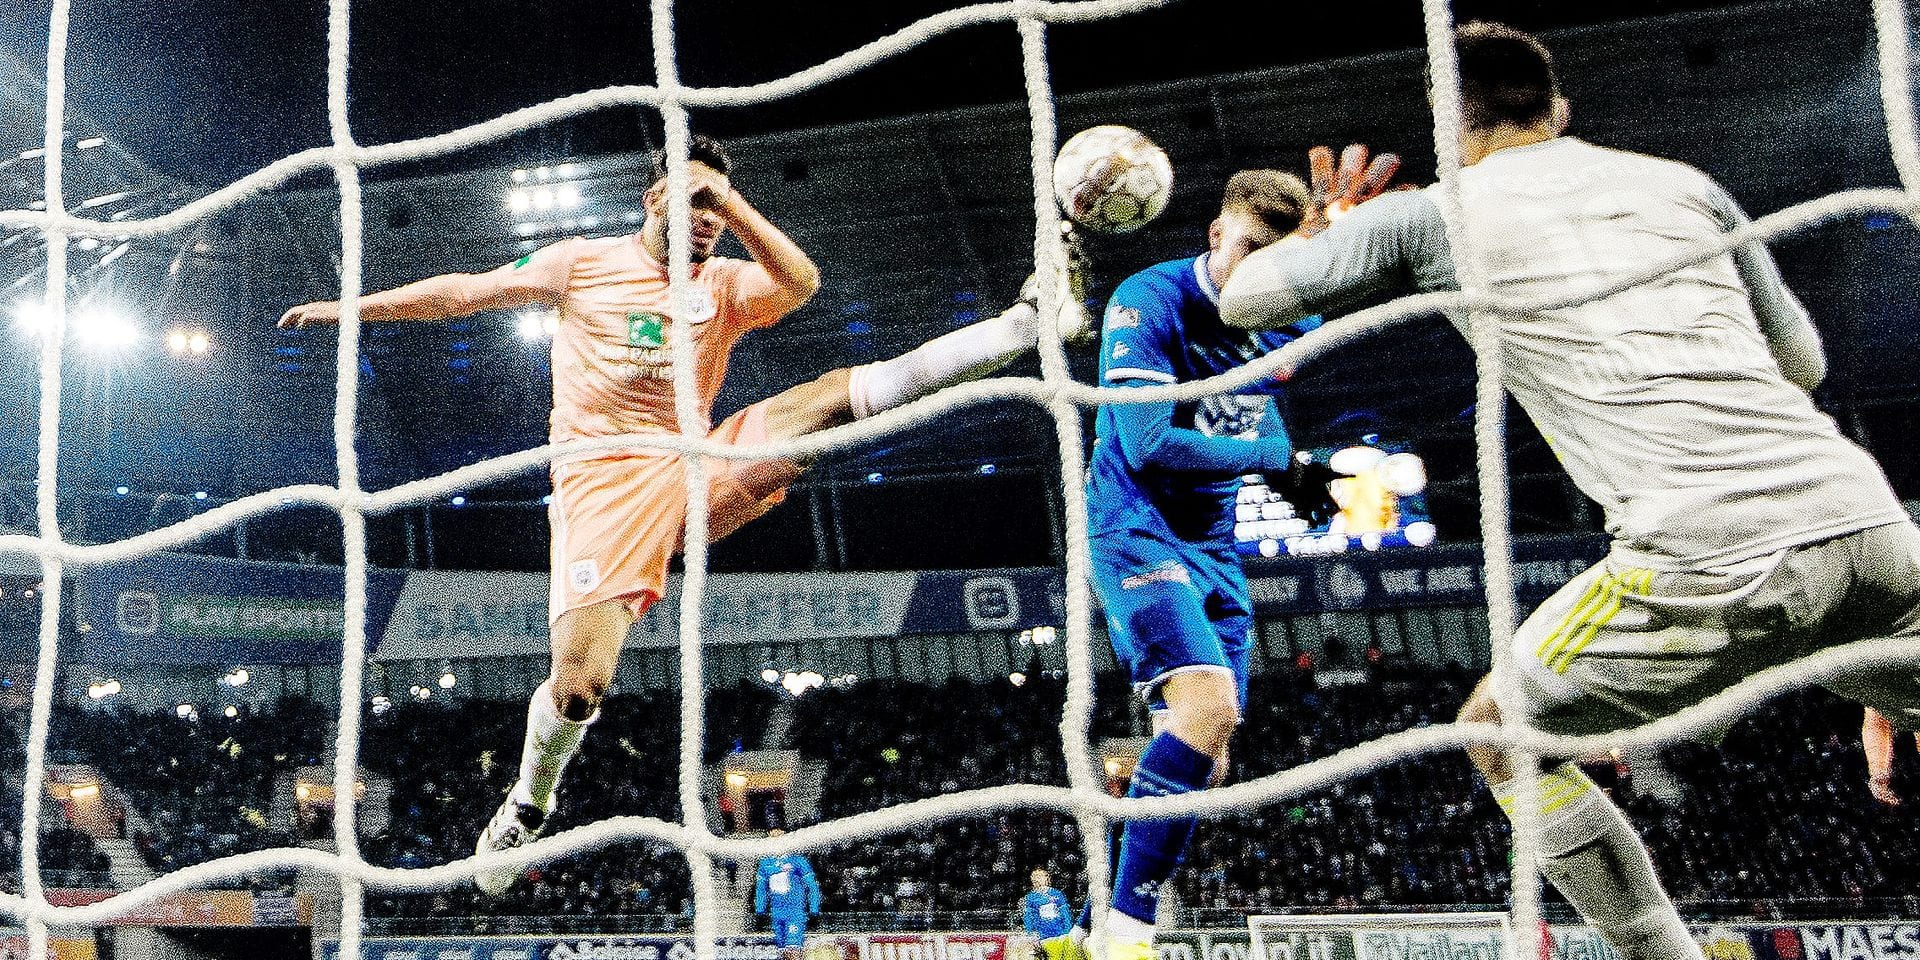 Anderlecht's goalkeeper Thomas Didillon and Gent's Alexander Sorloth scores an goal during a soccer match between KAA Gent and RSC Anderlecht, Sunday 20 January 2019 in Gent, on day 22 of the 'Jupiler Pro League' Belgian soccer championship season 2018-2019. BELGA PHOTO JASPER JACOBS